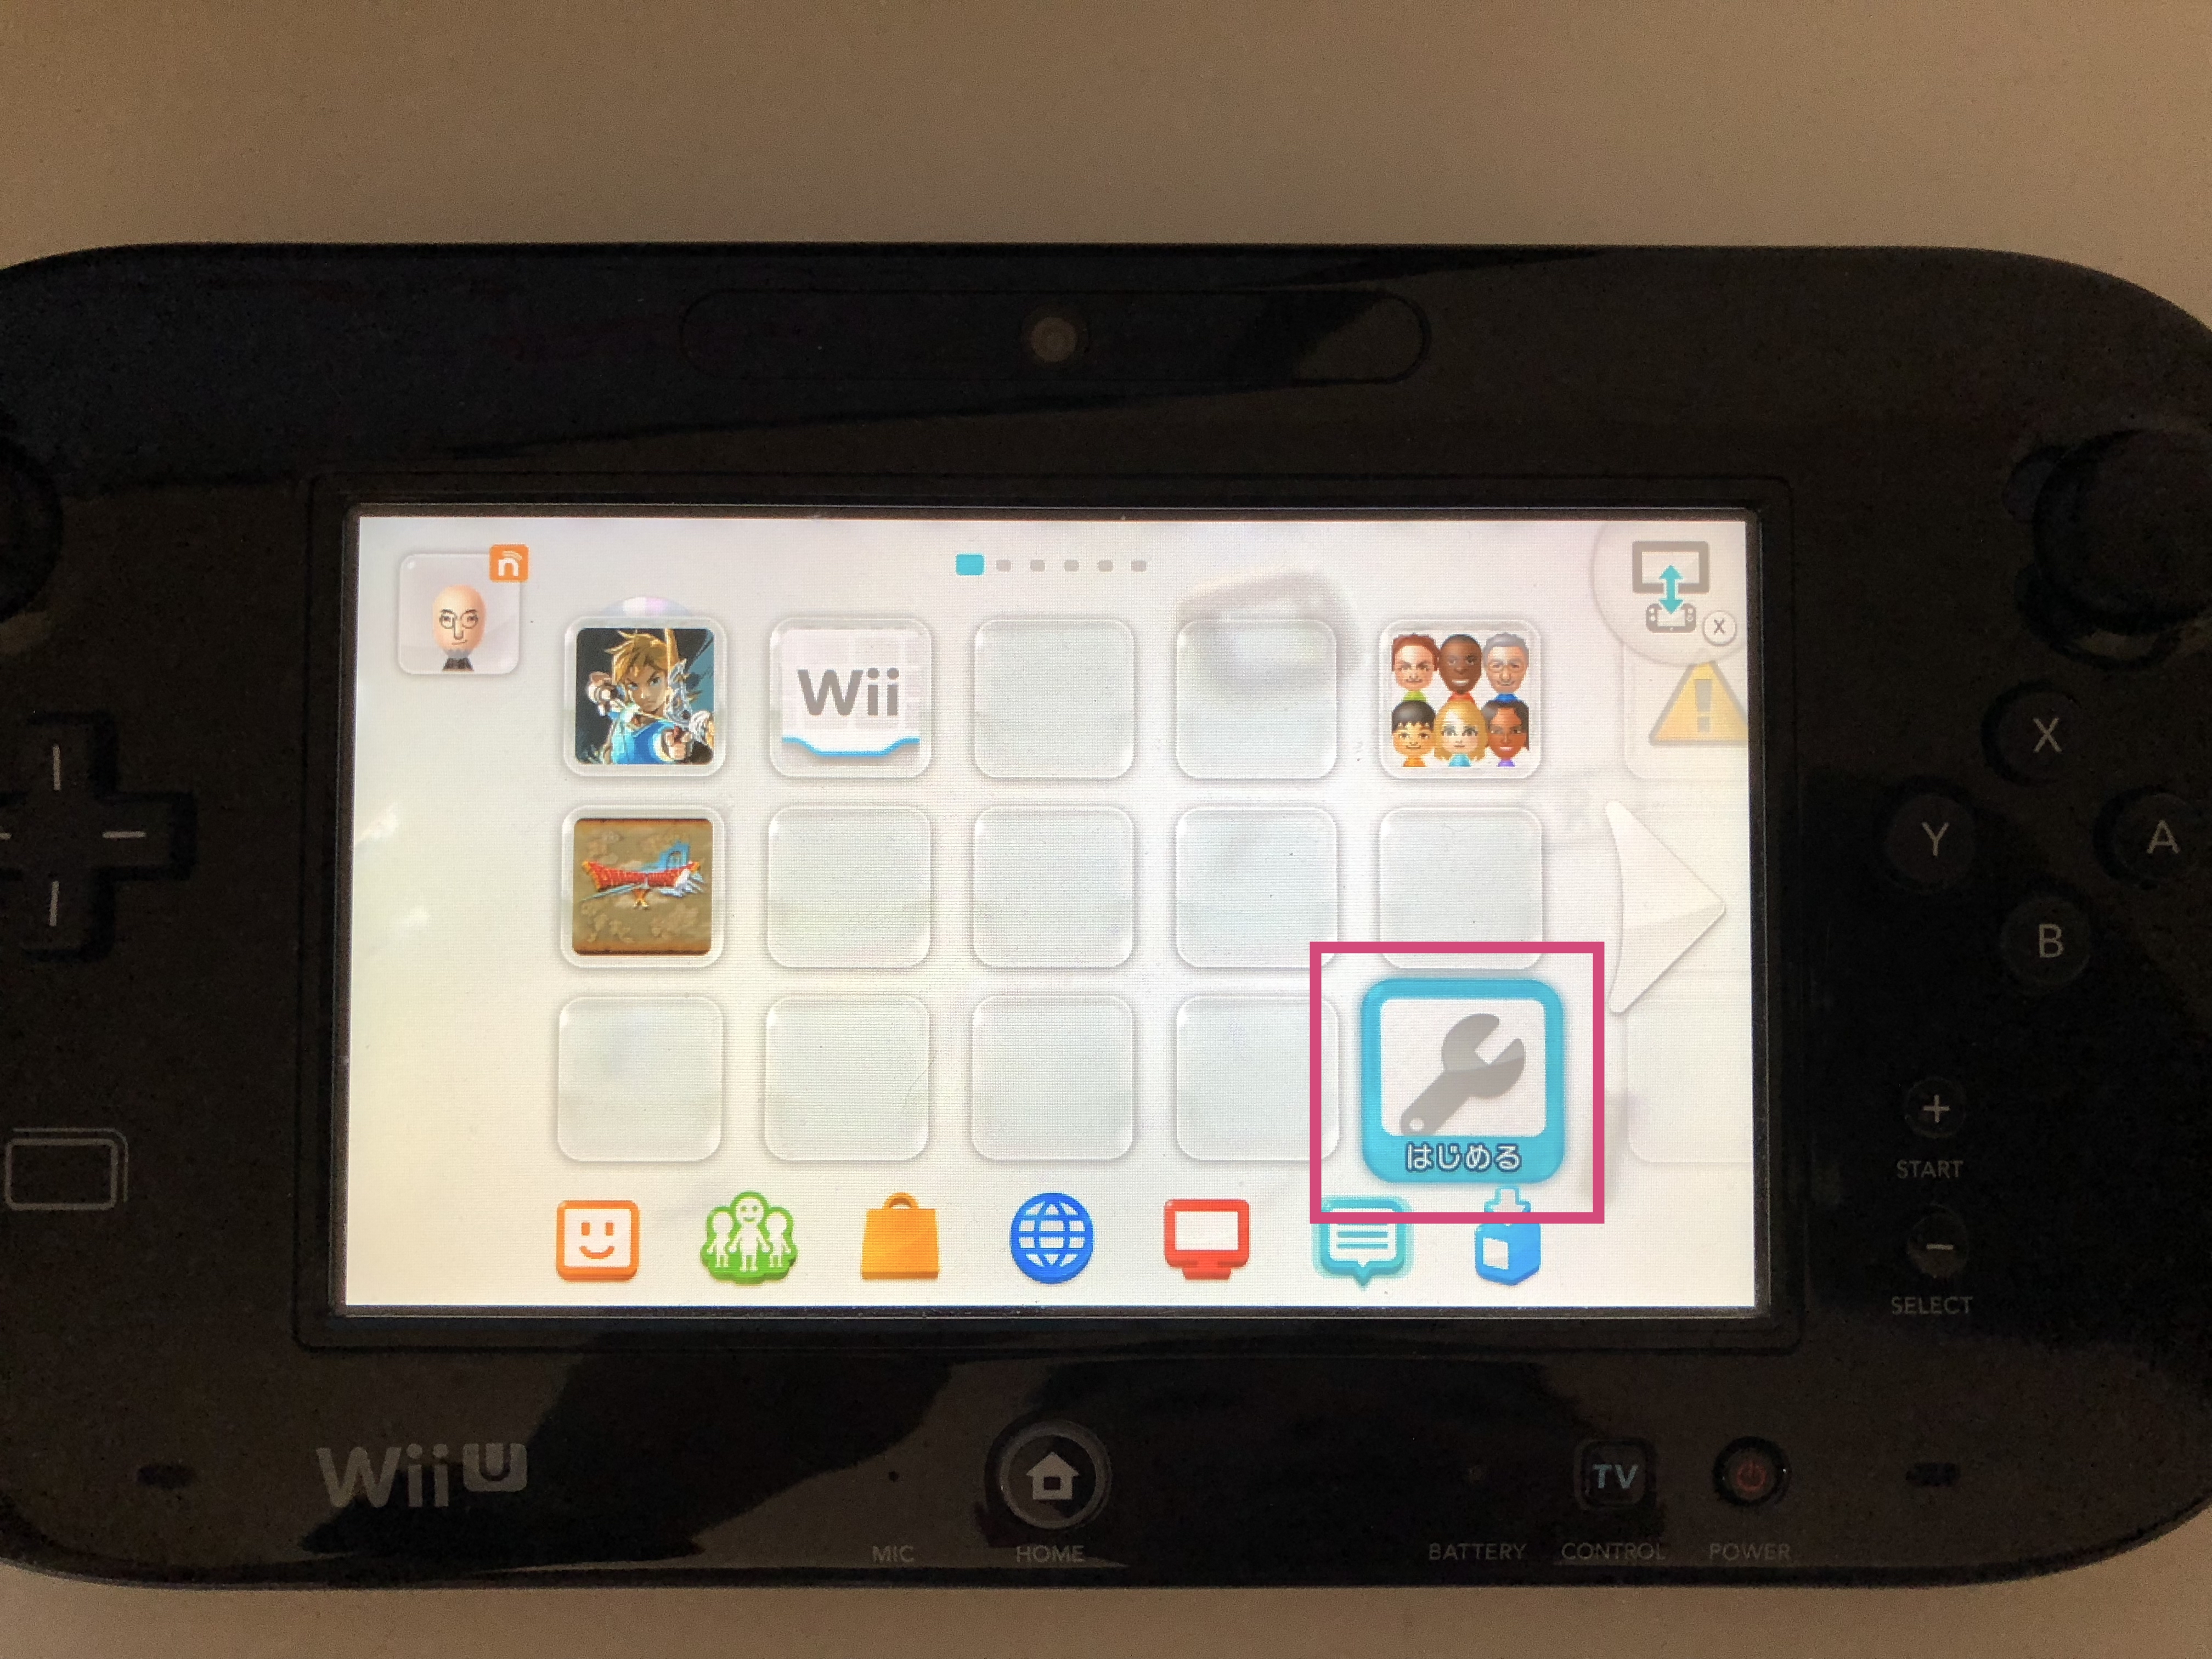 wii-u-data-formatting-wii-shopping-channel-dont-forget-1